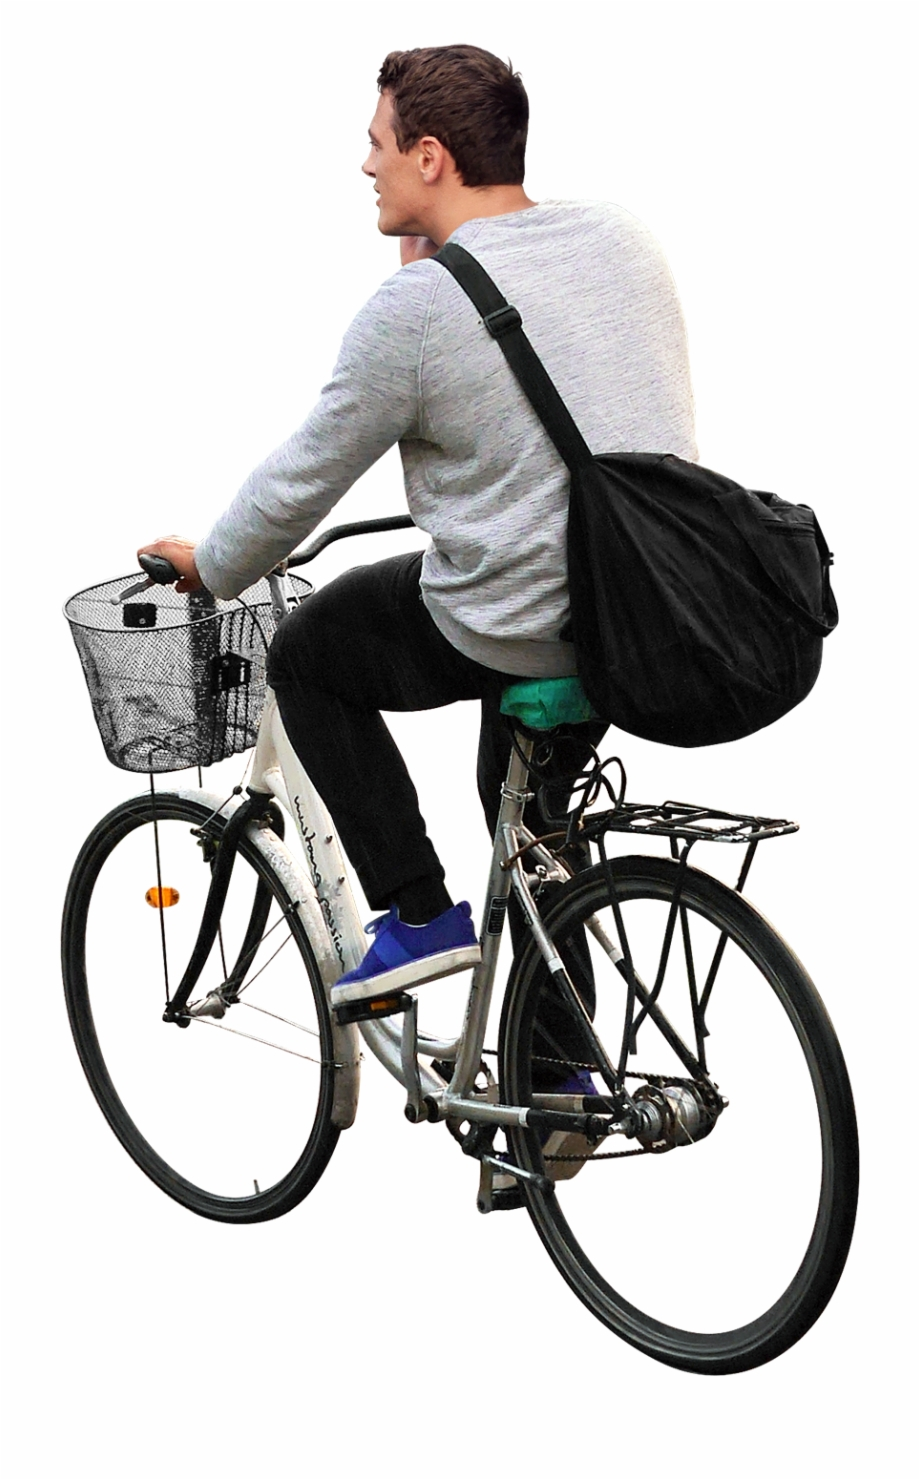 Cycling, Cyclist Png.